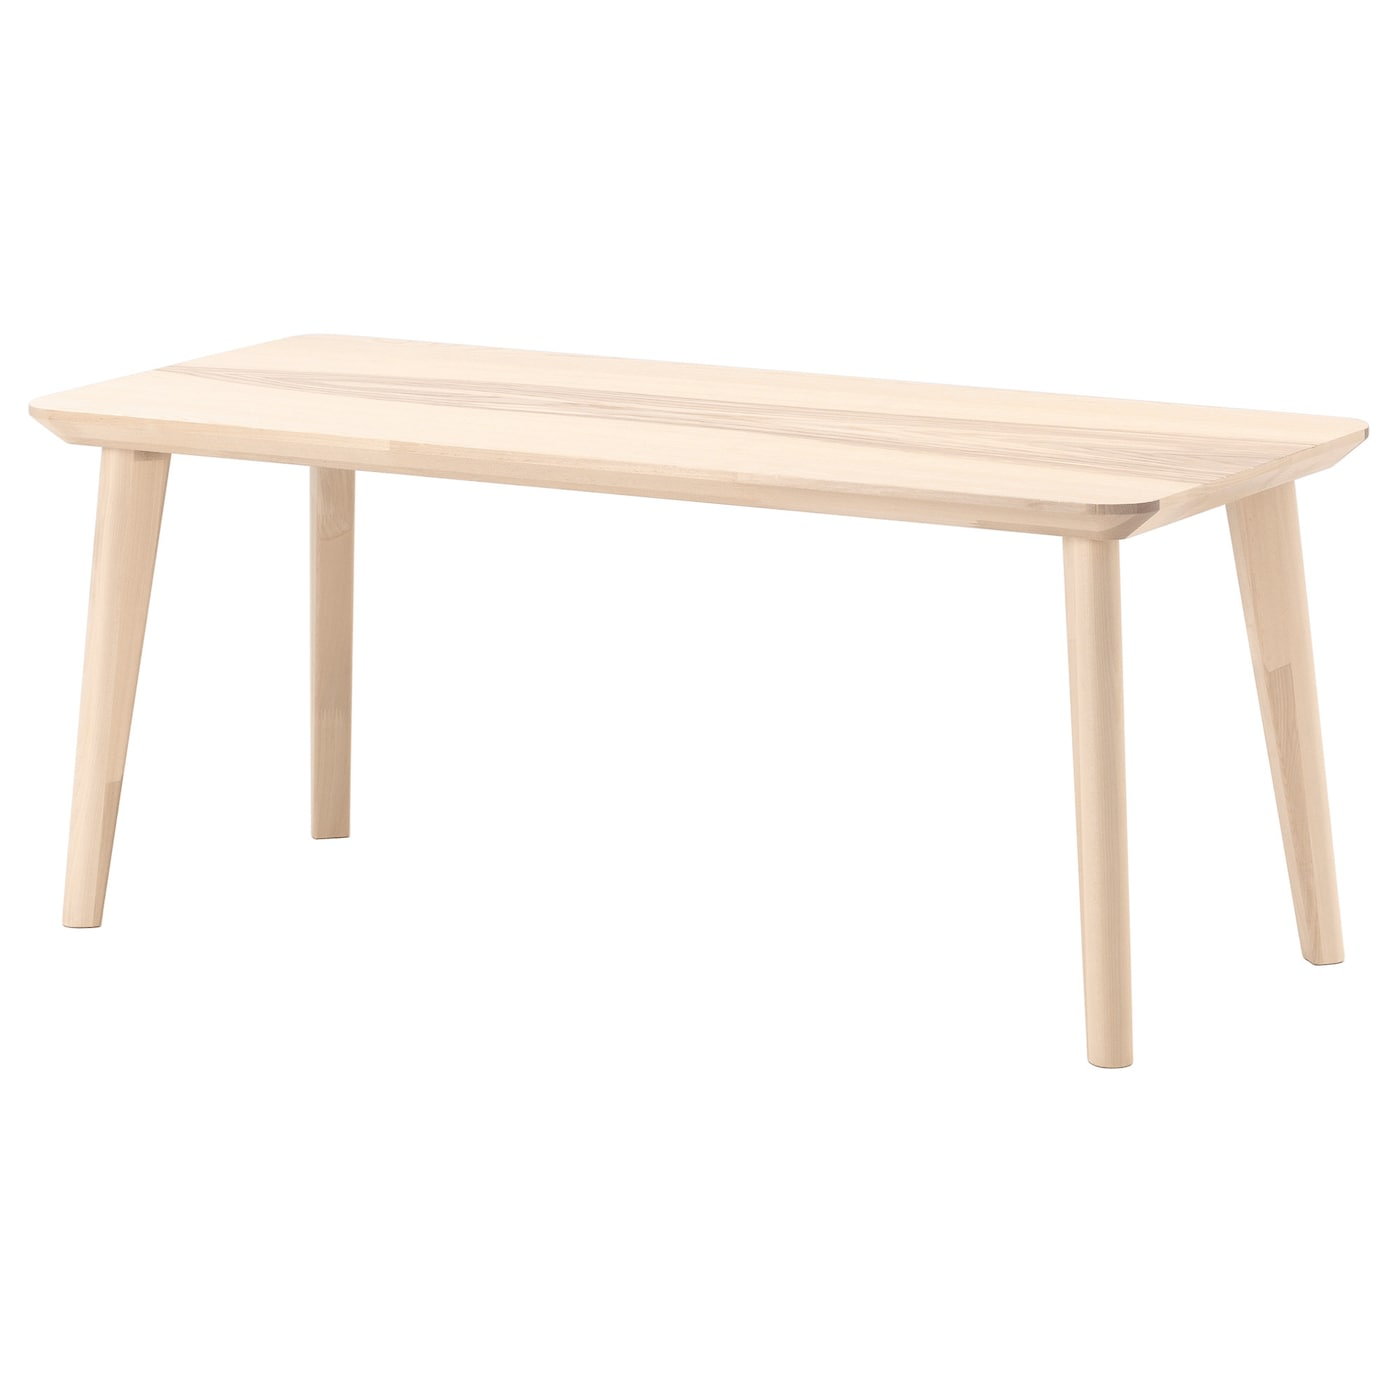 Lisabo coffee table ash veneer 118x50 cm ikea for Table en pin ikea